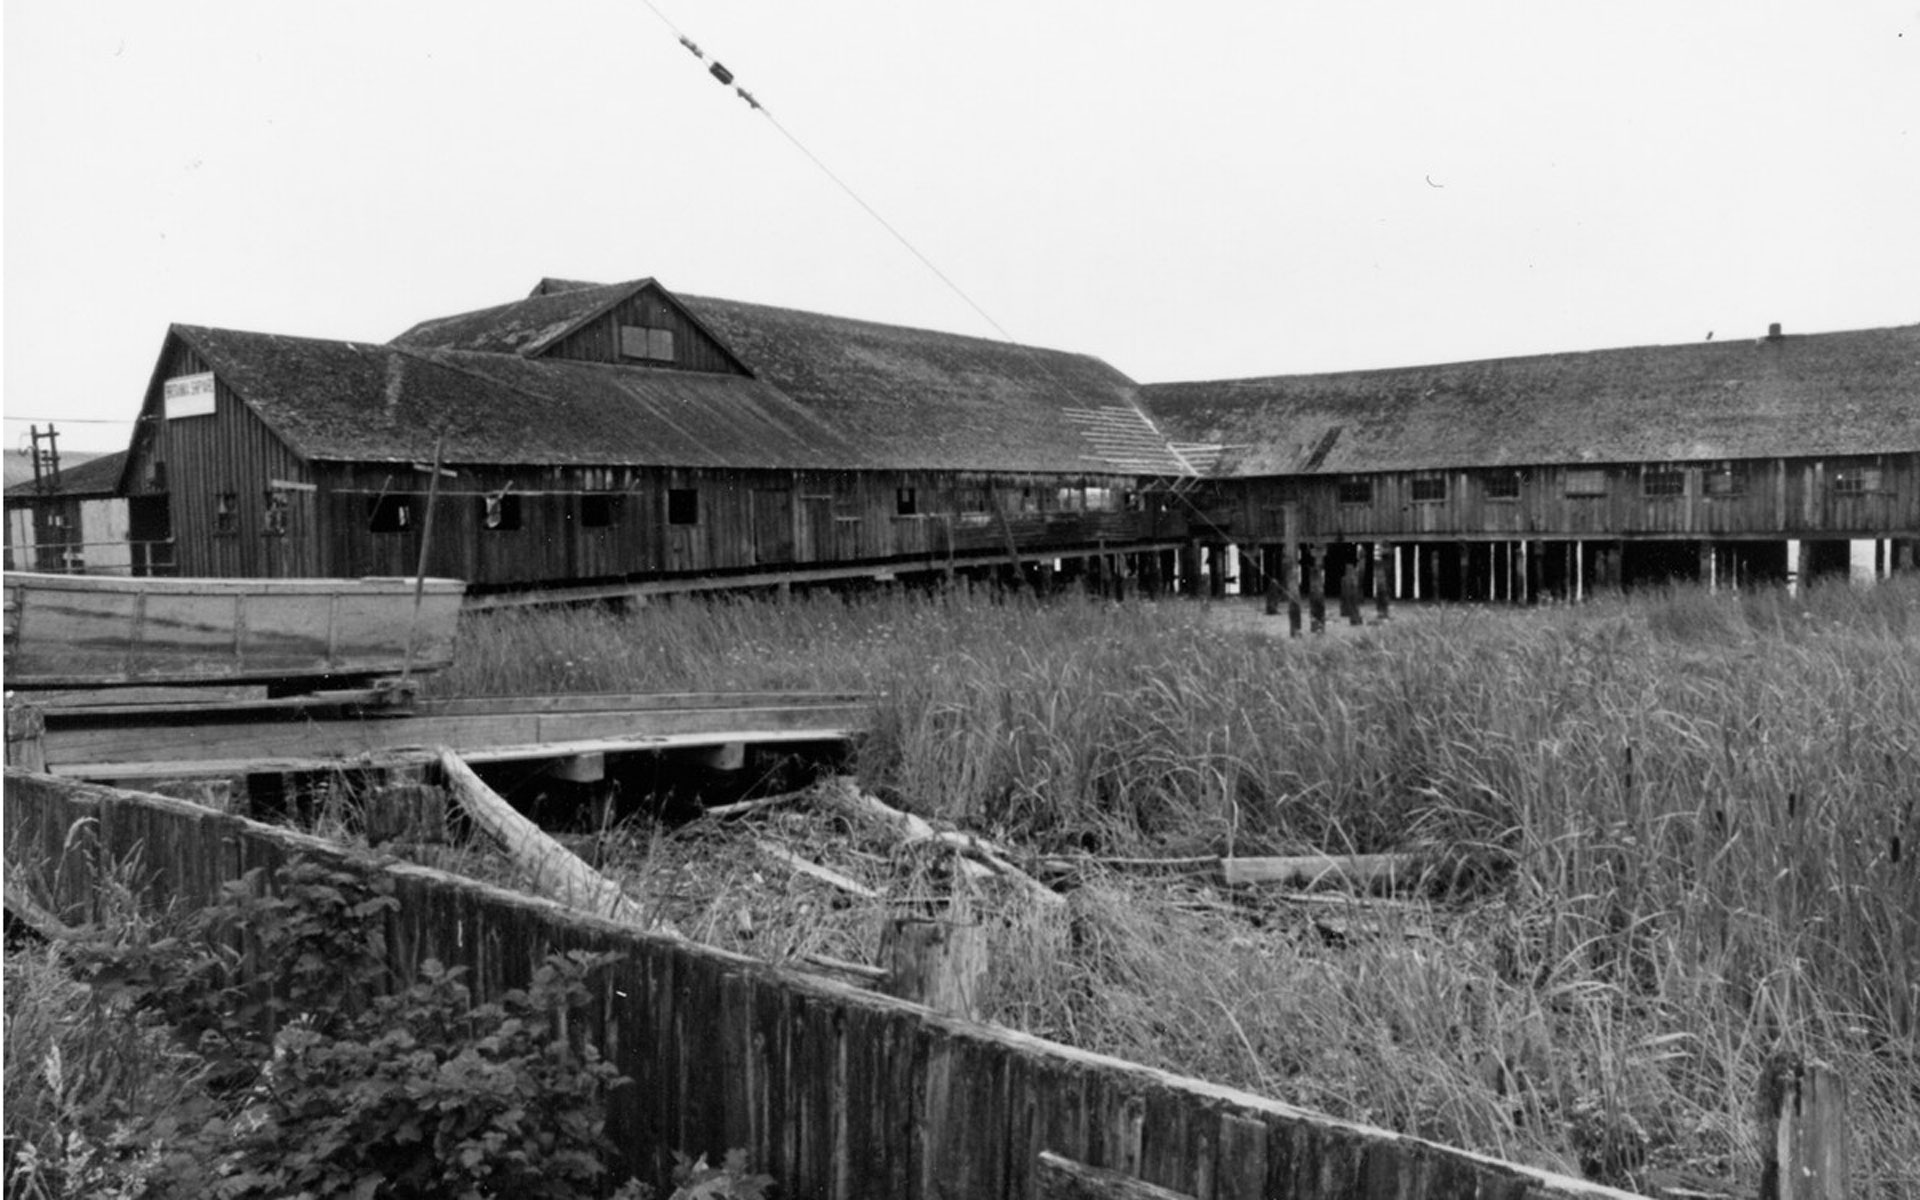 Britannia Shipyards buildings at low tide with grasses in the foreground.